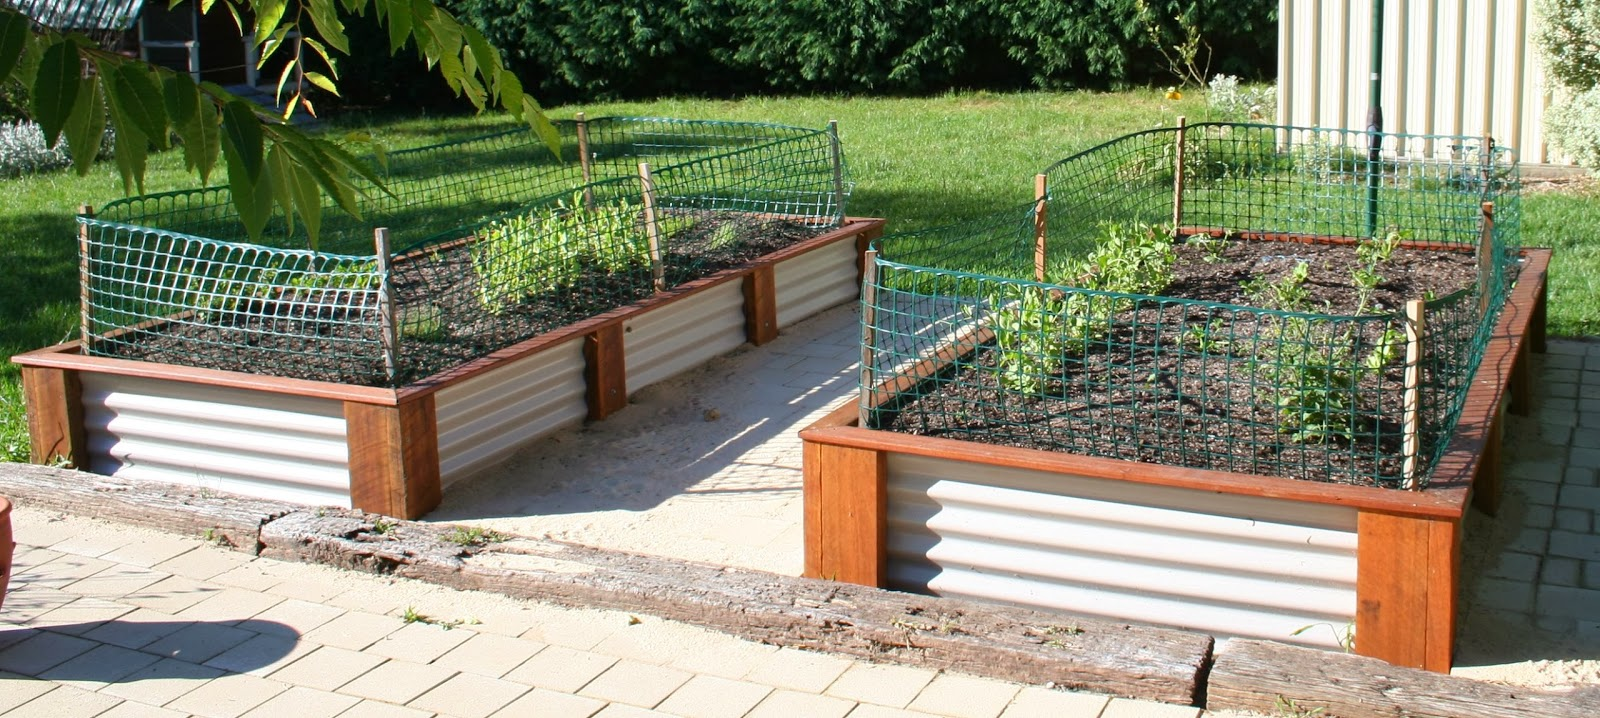 Corrugated iron raised garden beds corrugated iron Raised garden beds